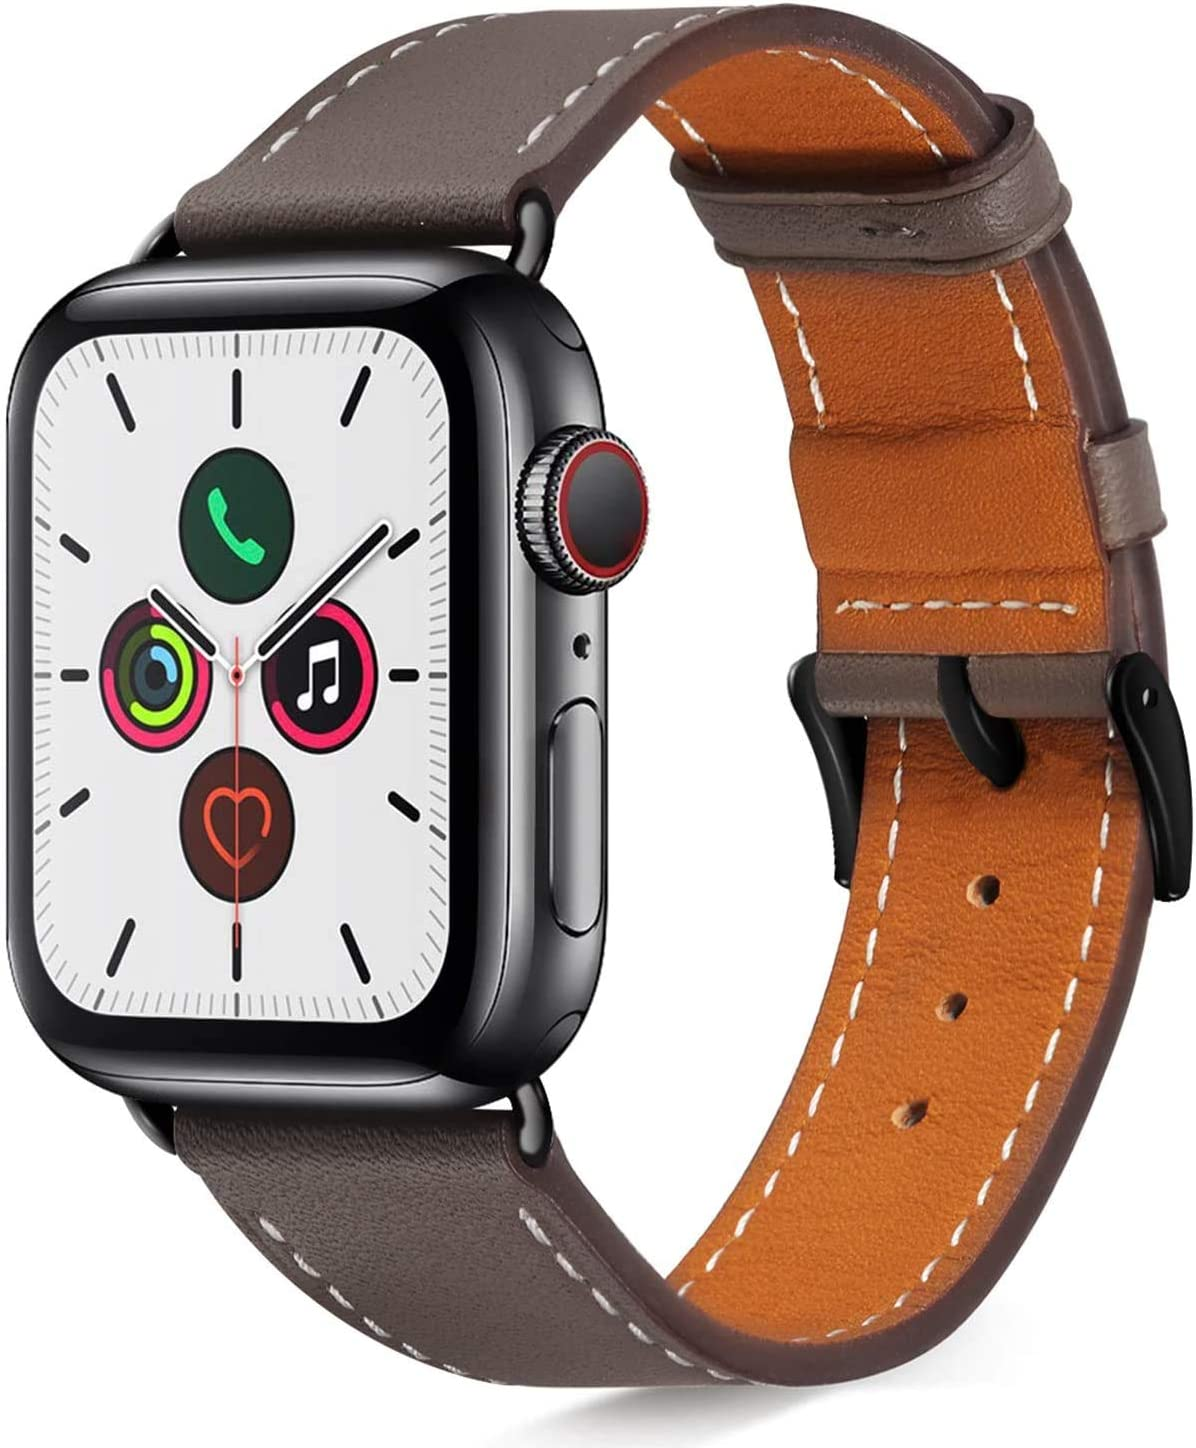 Compatible with iWatch Bands 38mm 40mm Womens for Apple Watch Band Series 6 SE 5 4 3 2 1 Men, Pierre Case Durable Genuine Leather Replacement Strap, Adjustable Stainless Metal Clasp,Gray